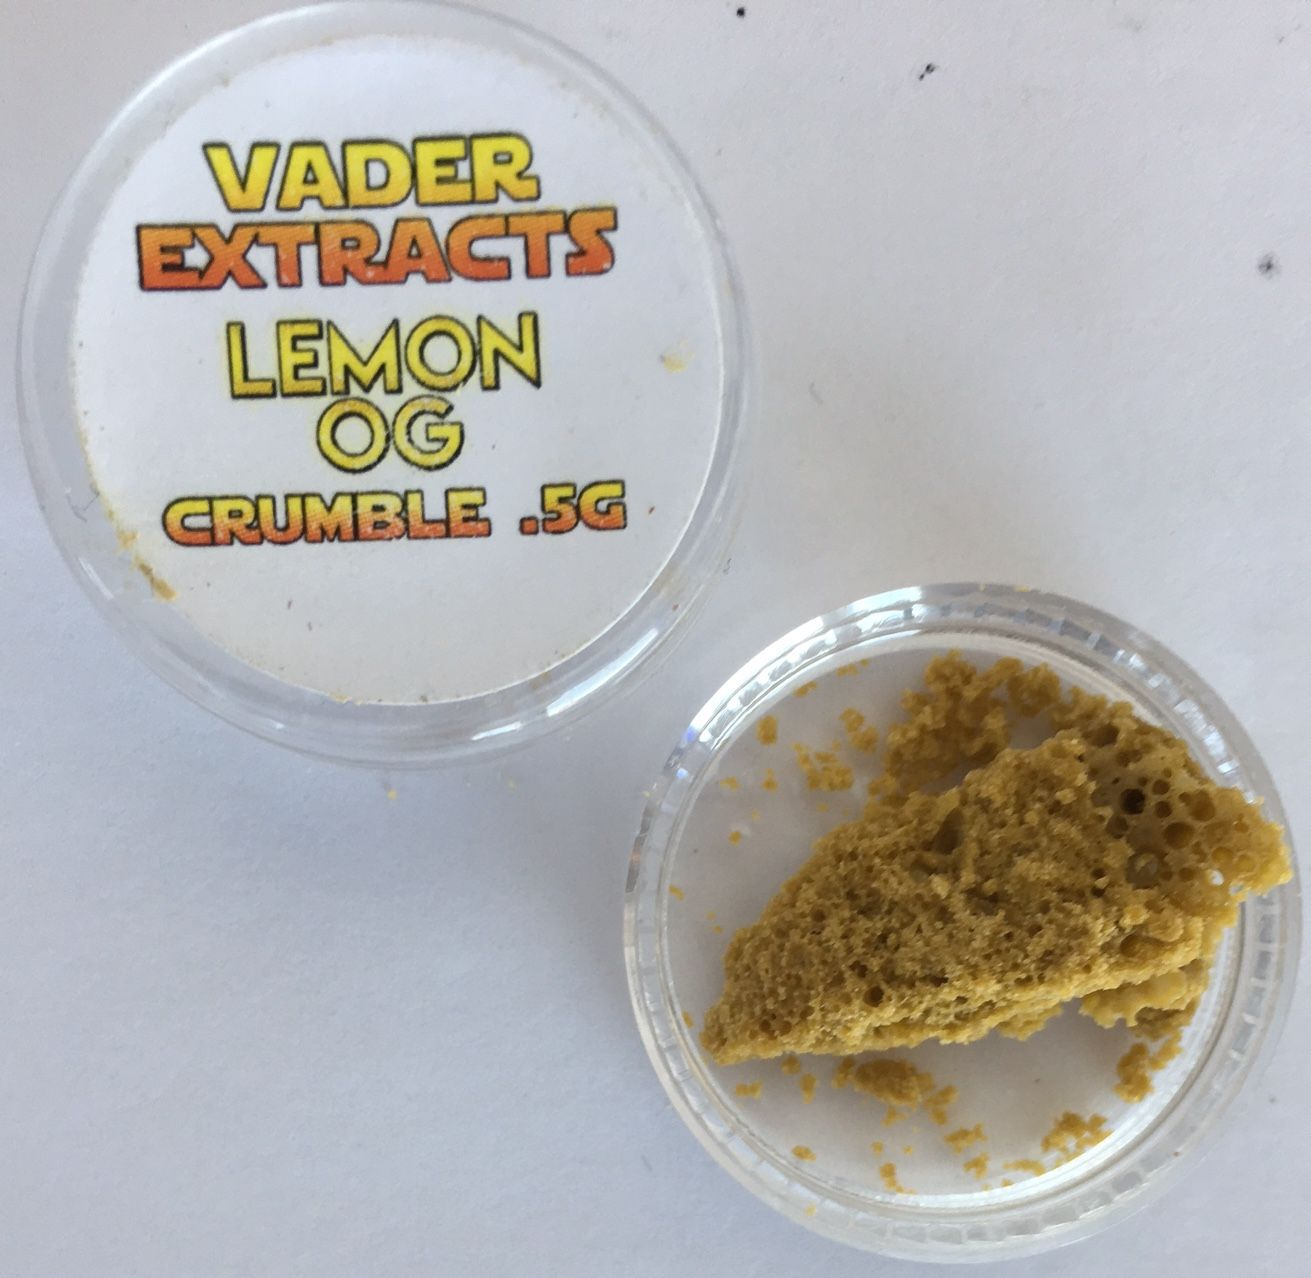 Vader Extracts - Lemon OG Crumble